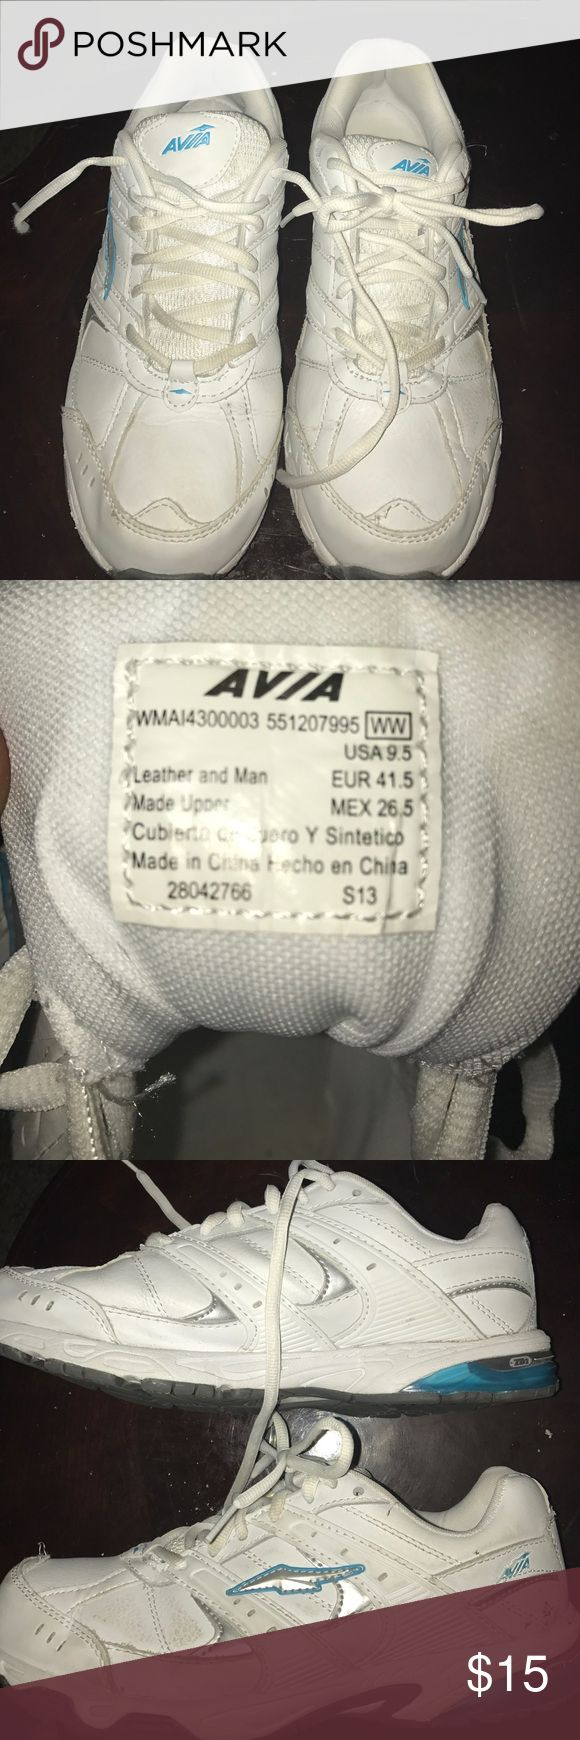 Avis Tennis shoes ladies Great condition White tennis shoes. Leather and man made materials.    (7) Avia Shoes Athletic Shoes